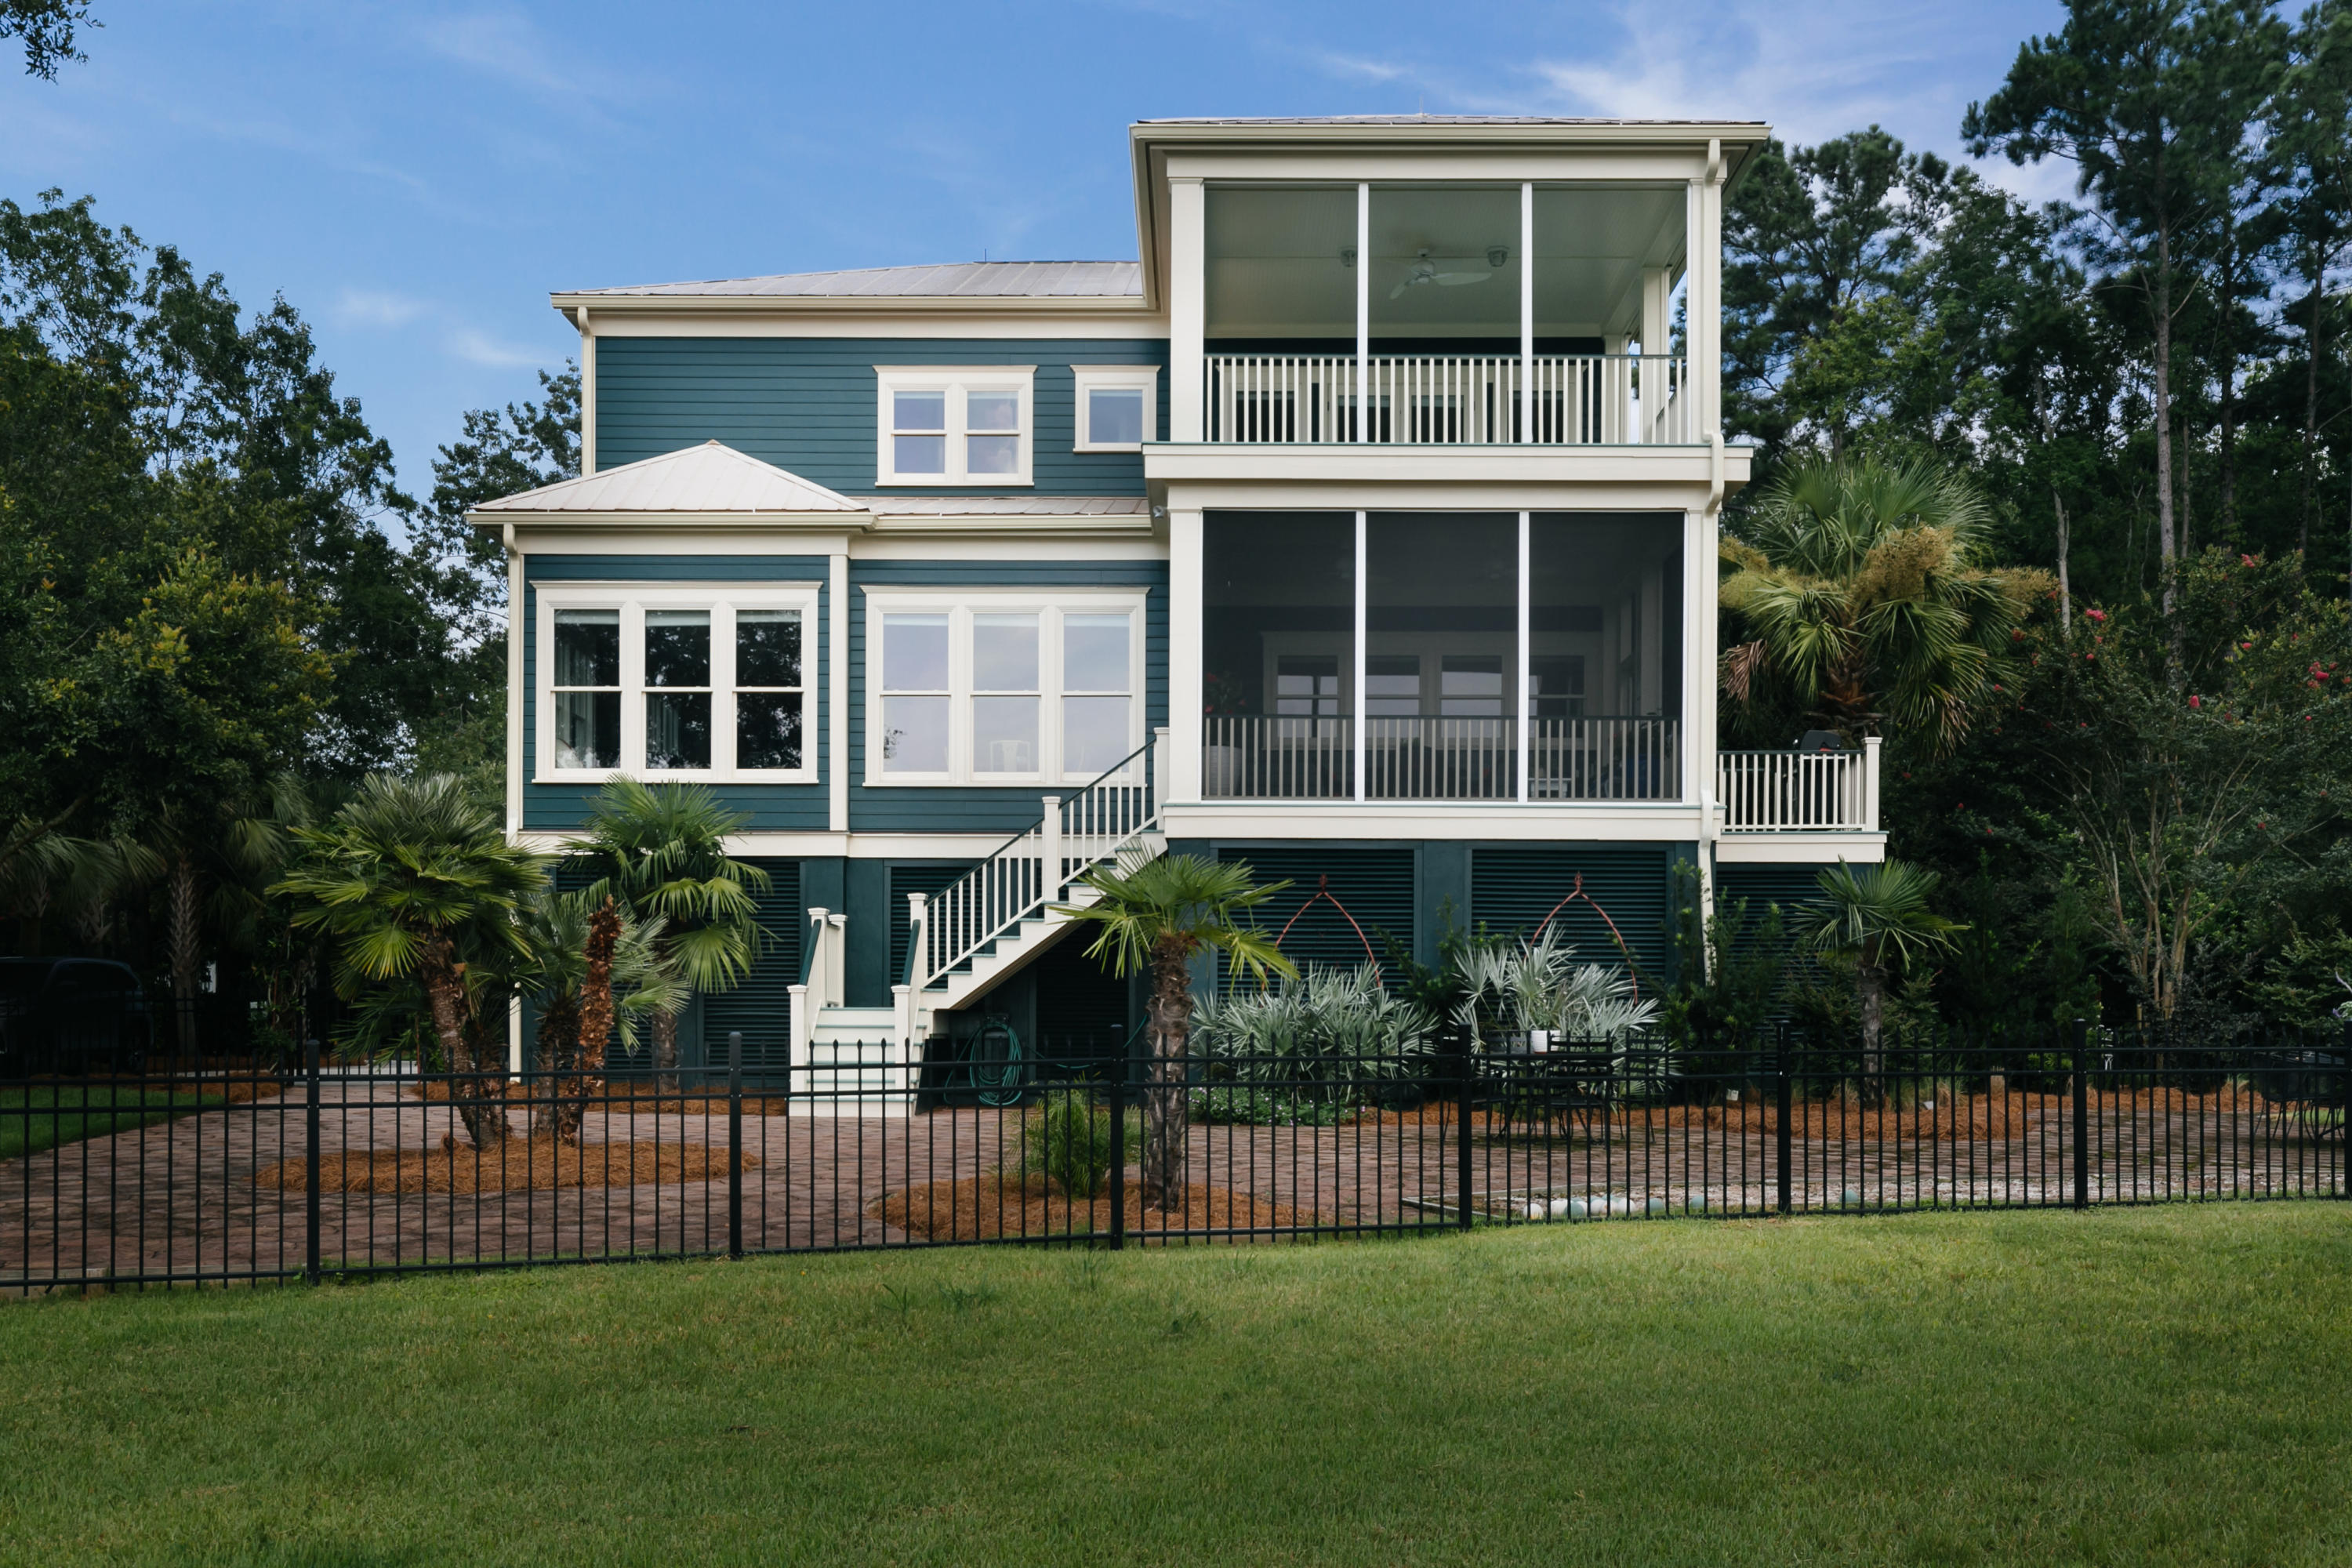 Rivertowne On The Wando Homes For Sale - 2212 Hartfords Bluff, Mount Pleasant, SC - 48